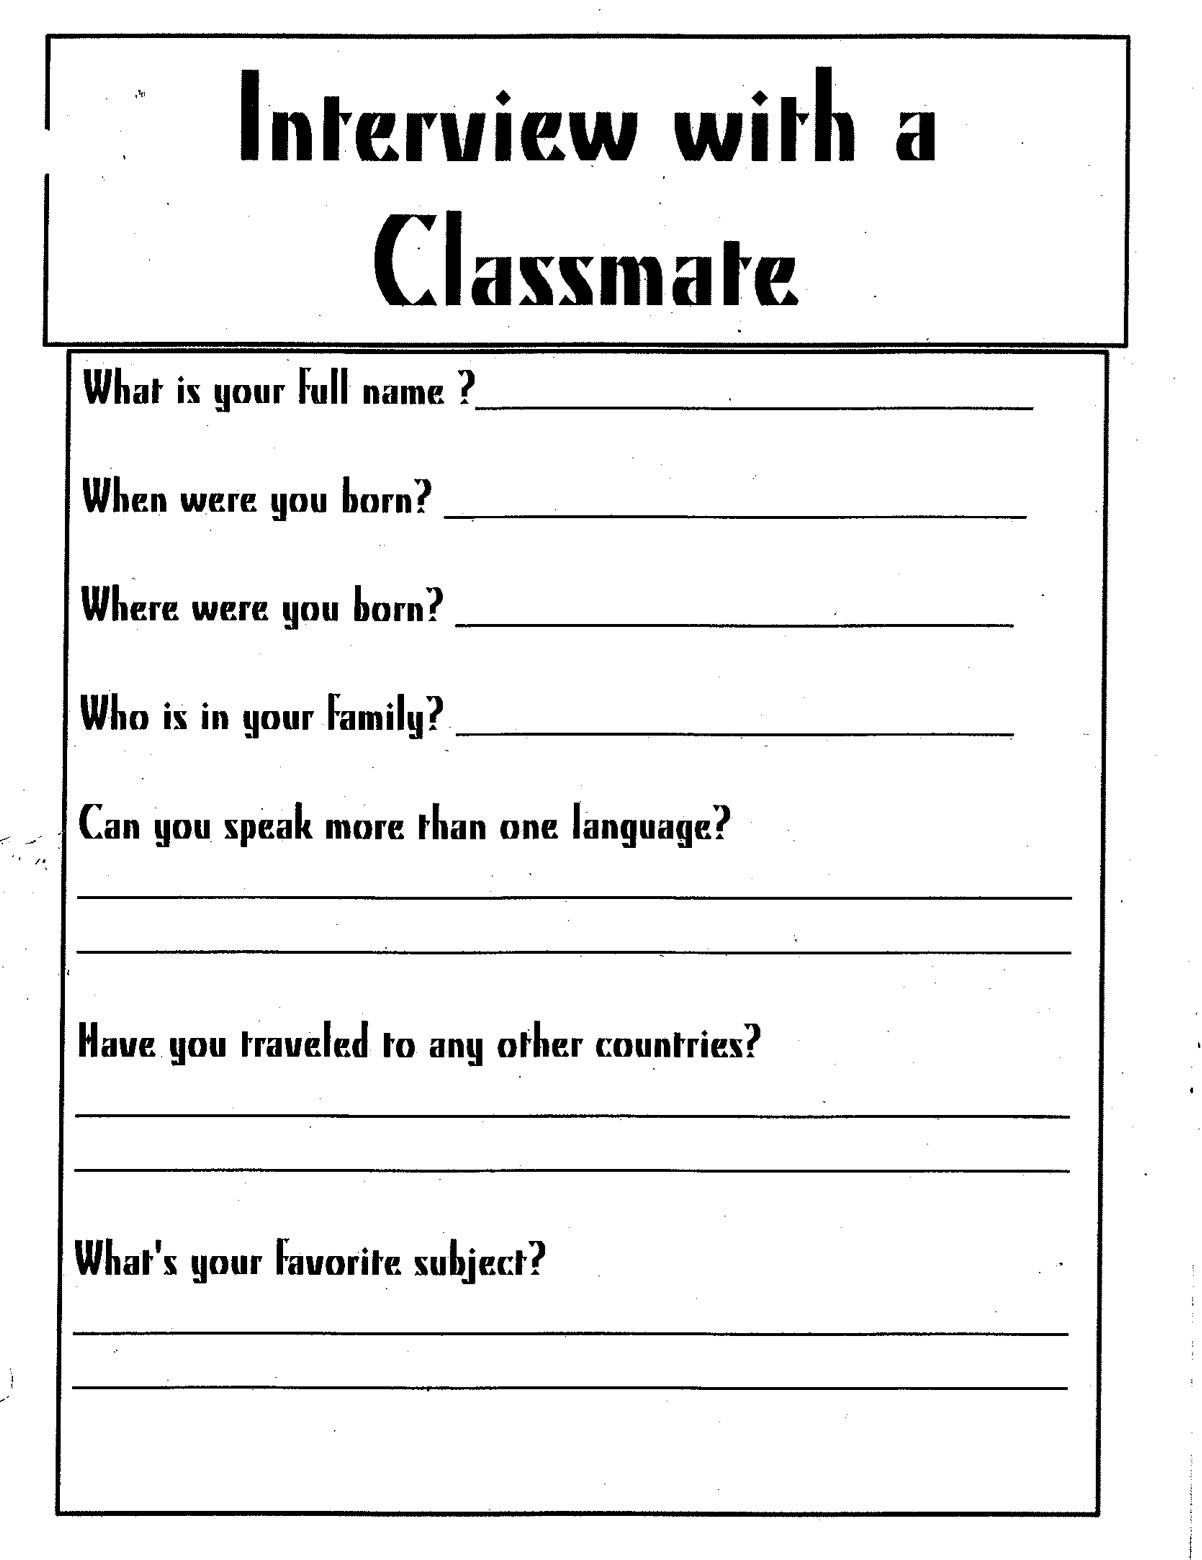 interview reflection worksheet Please use the information from your interview to complete this worksheet submit this worksheet in the module 2: assignment dropbox no later than day 7 of module 2.